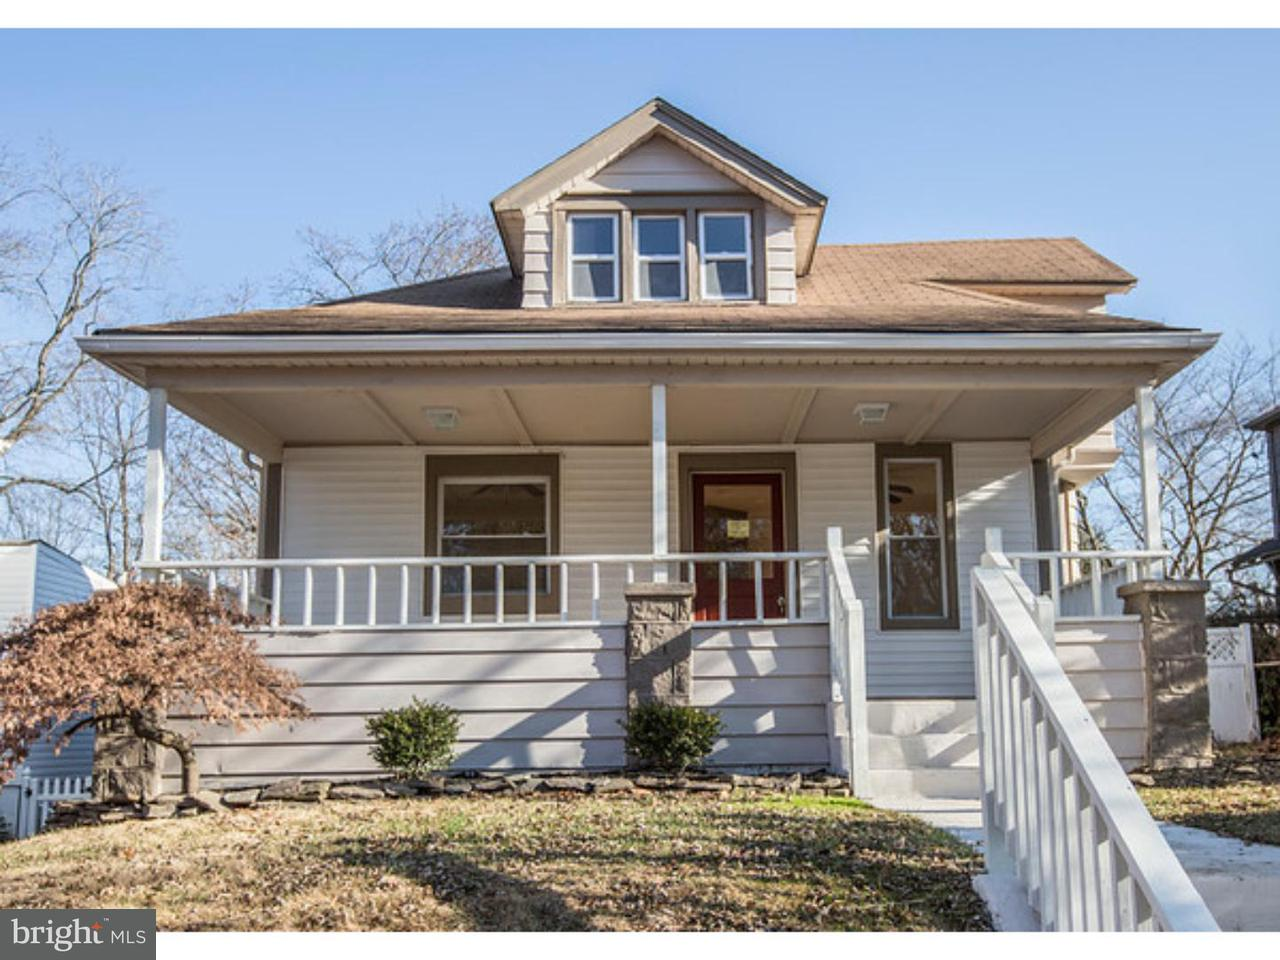 Single Family Home for Sale at 137 S LOGAN Avenue Audubon, New Jersey 08106 United States